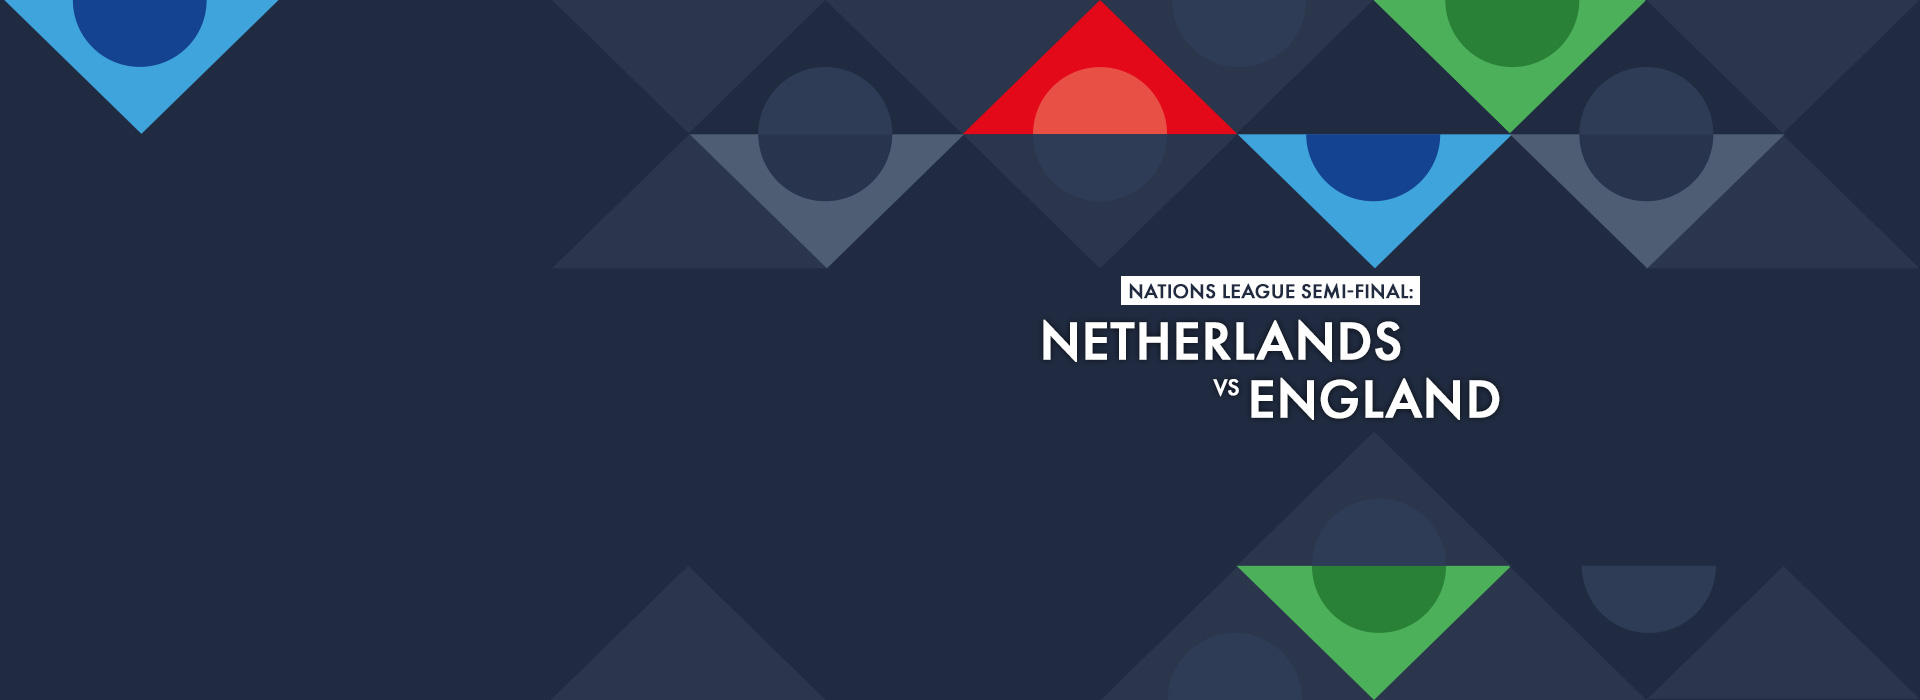 Netherlands vs England: UEFA Nations League Semi-Final Betting Preview